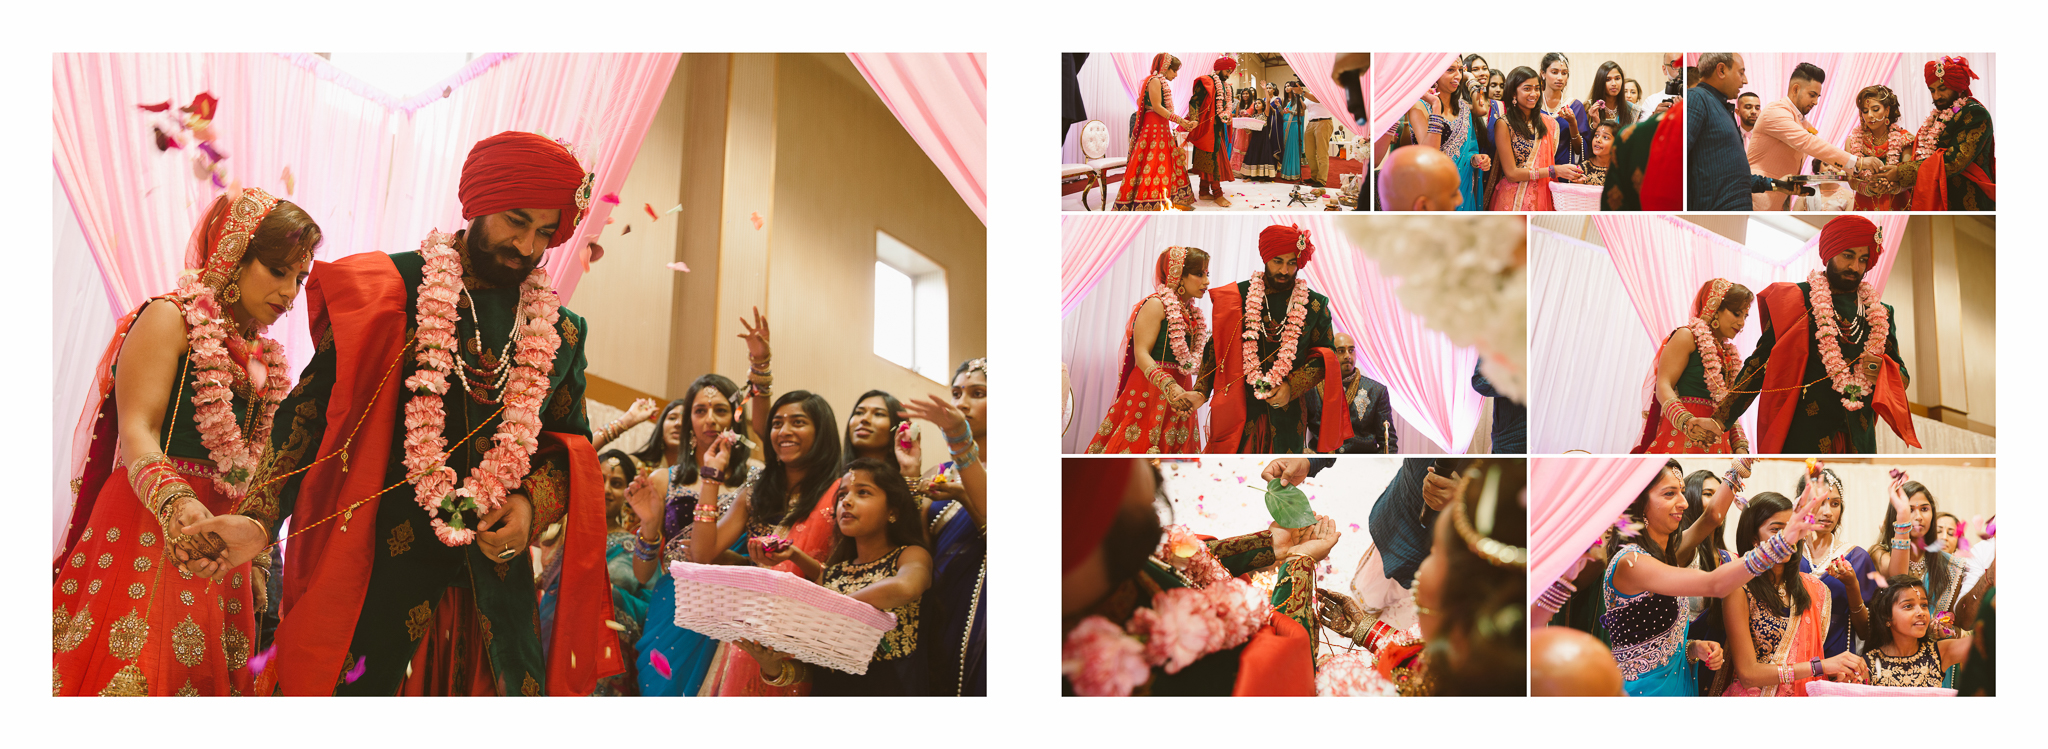 Zohaib Ali_Sikh Wedding_ London 047-048.jpg